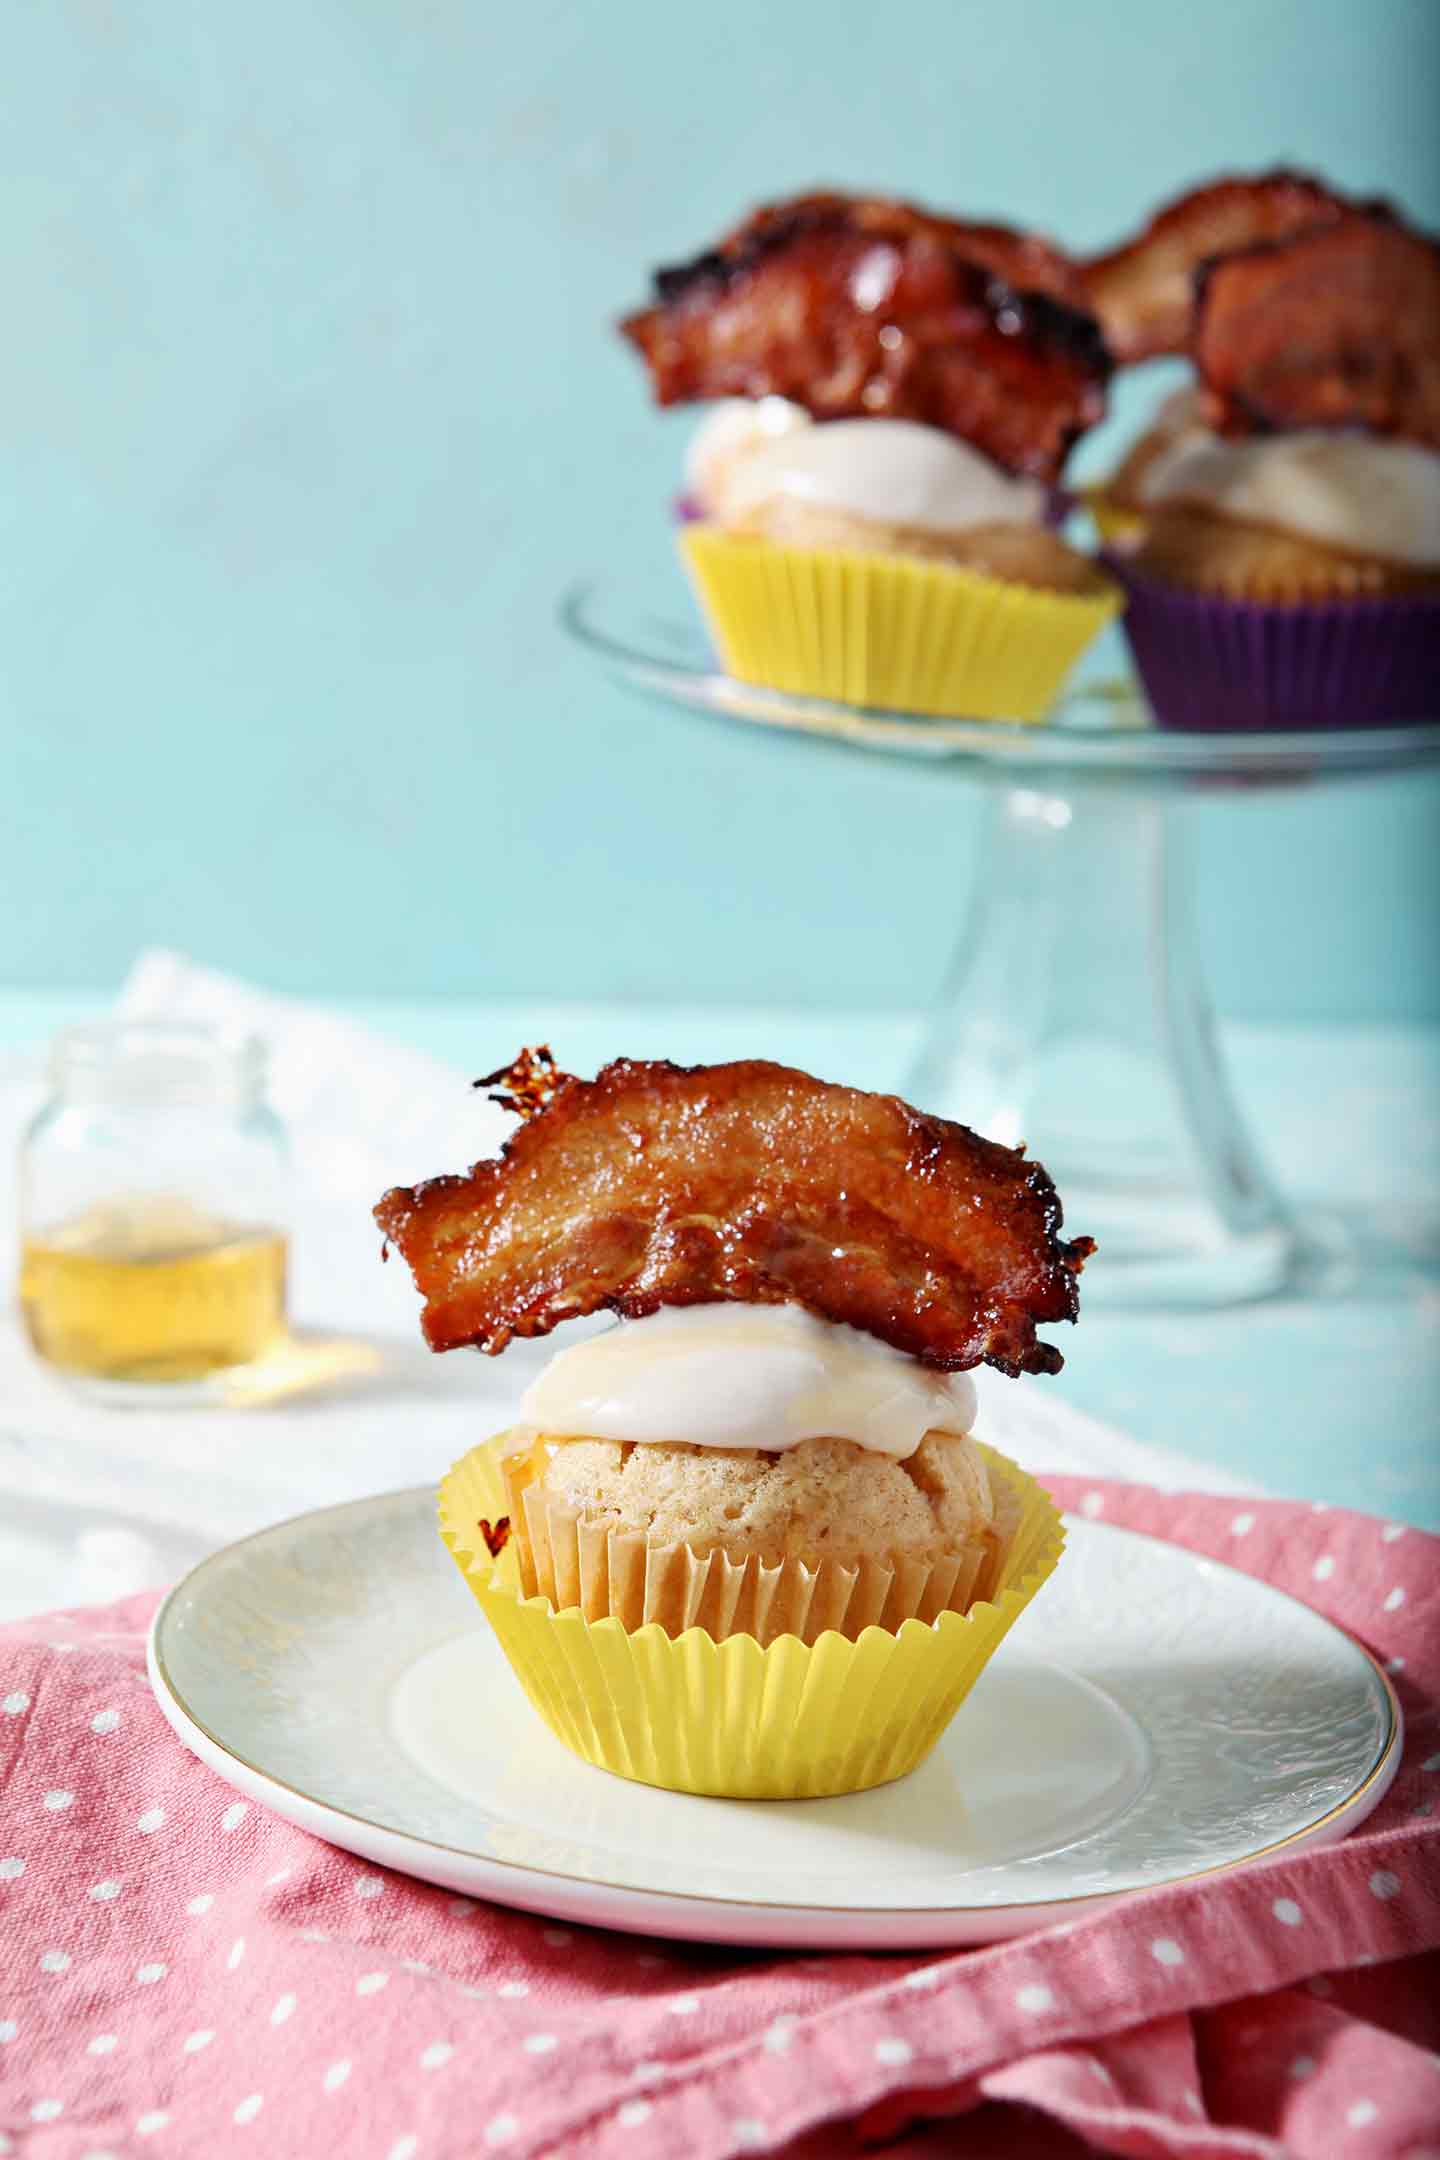 A Bourbon Maple Bacon Cupcake sits on a small plate, garnished with Maple Bacon, and ready for eating